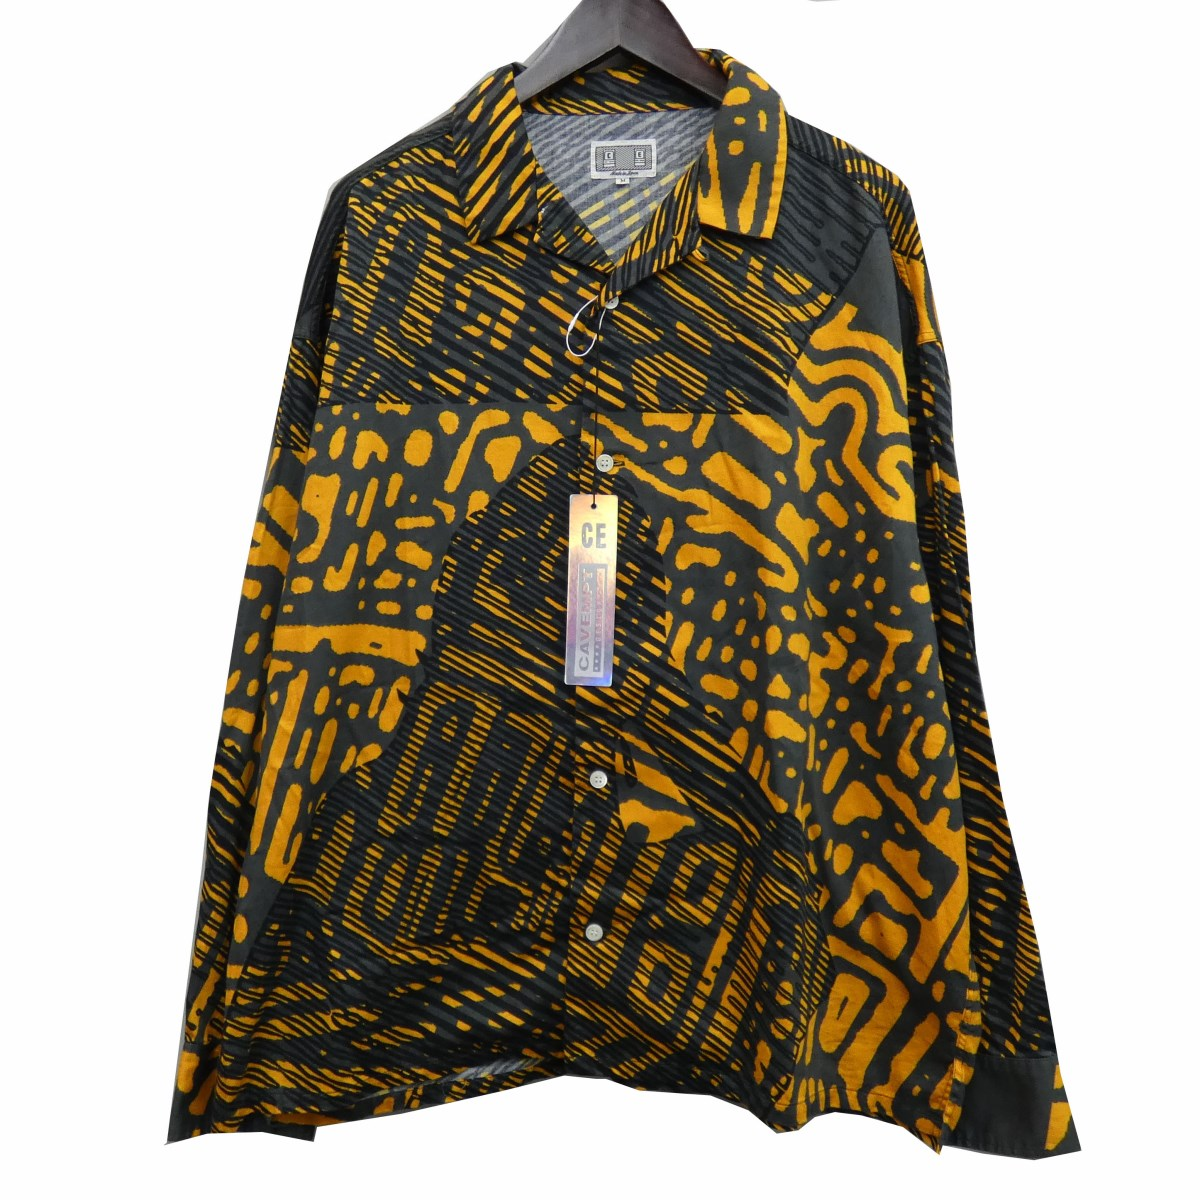 【中古】C.E 19AW 「SCAN LINE BIG SHIRT」 オープンカラーシャツ 【209024】 【KIND1884】